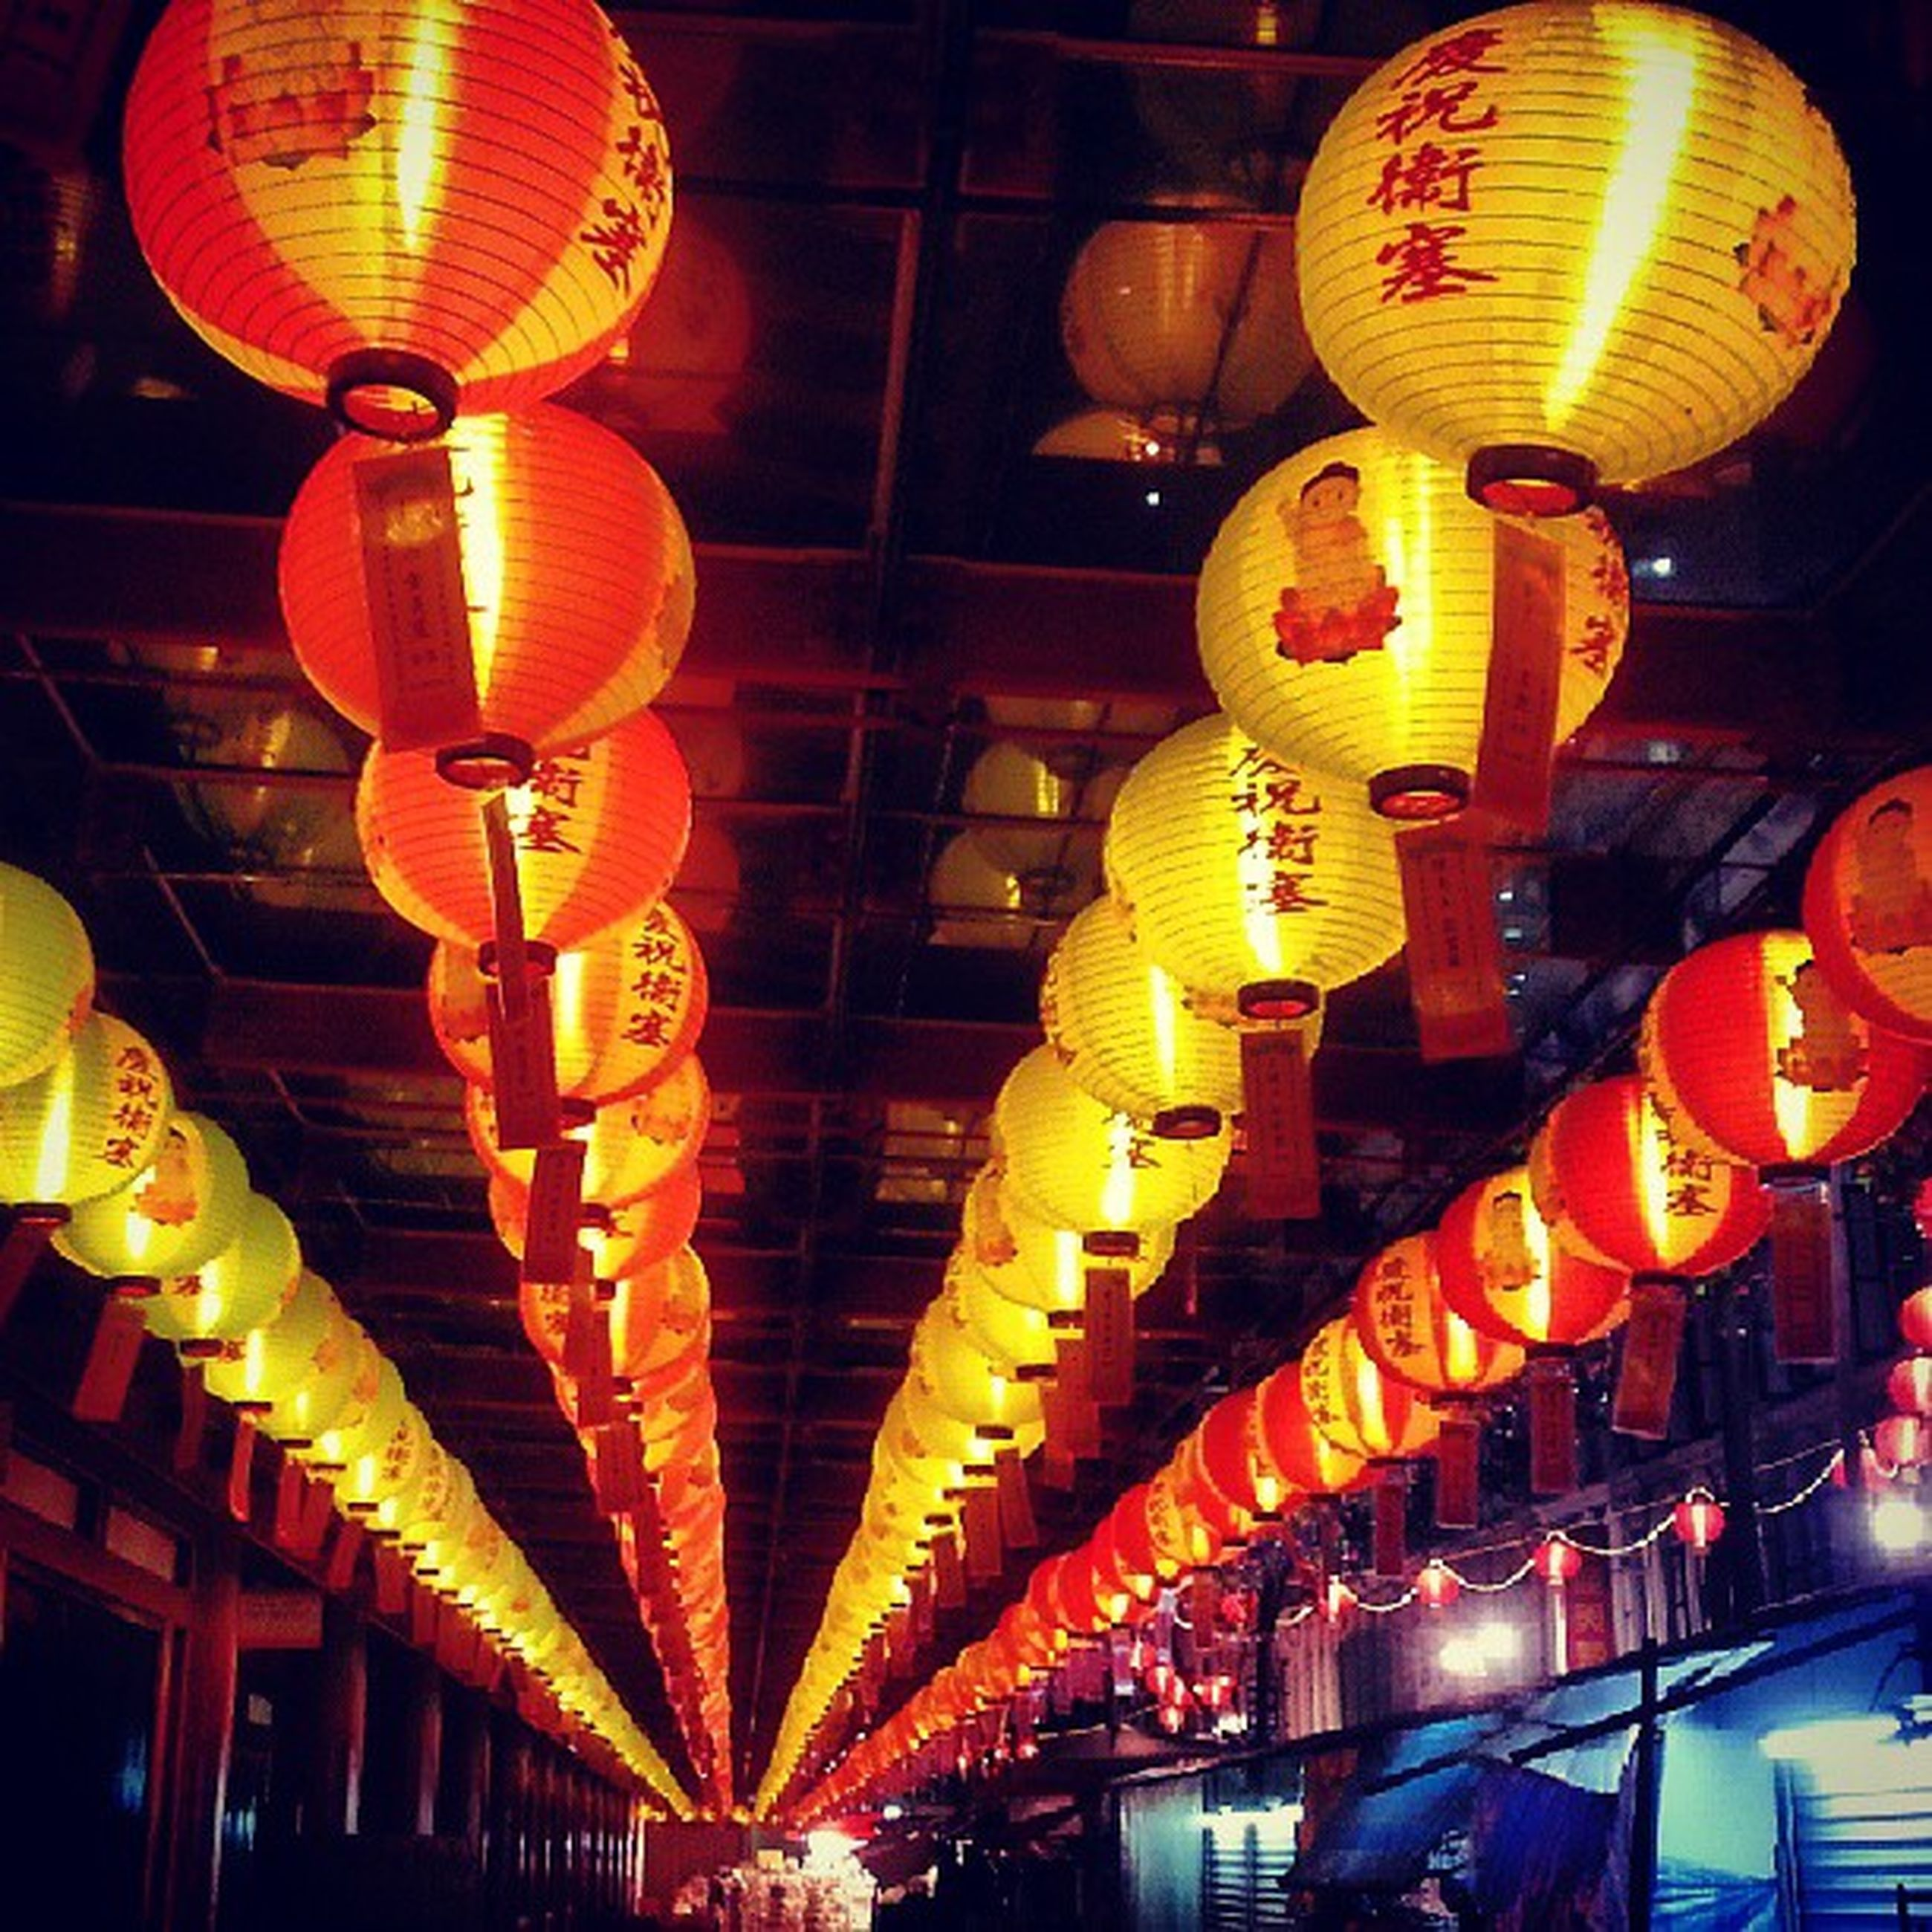 illuminated, lighting equipment, low angle view, hanging, lantern, ceiling, indoors, chinese lantern, decoration, night, in a row, architecture, built structure, electricity, culture, electric light, text, cultures, electric lamp, communication